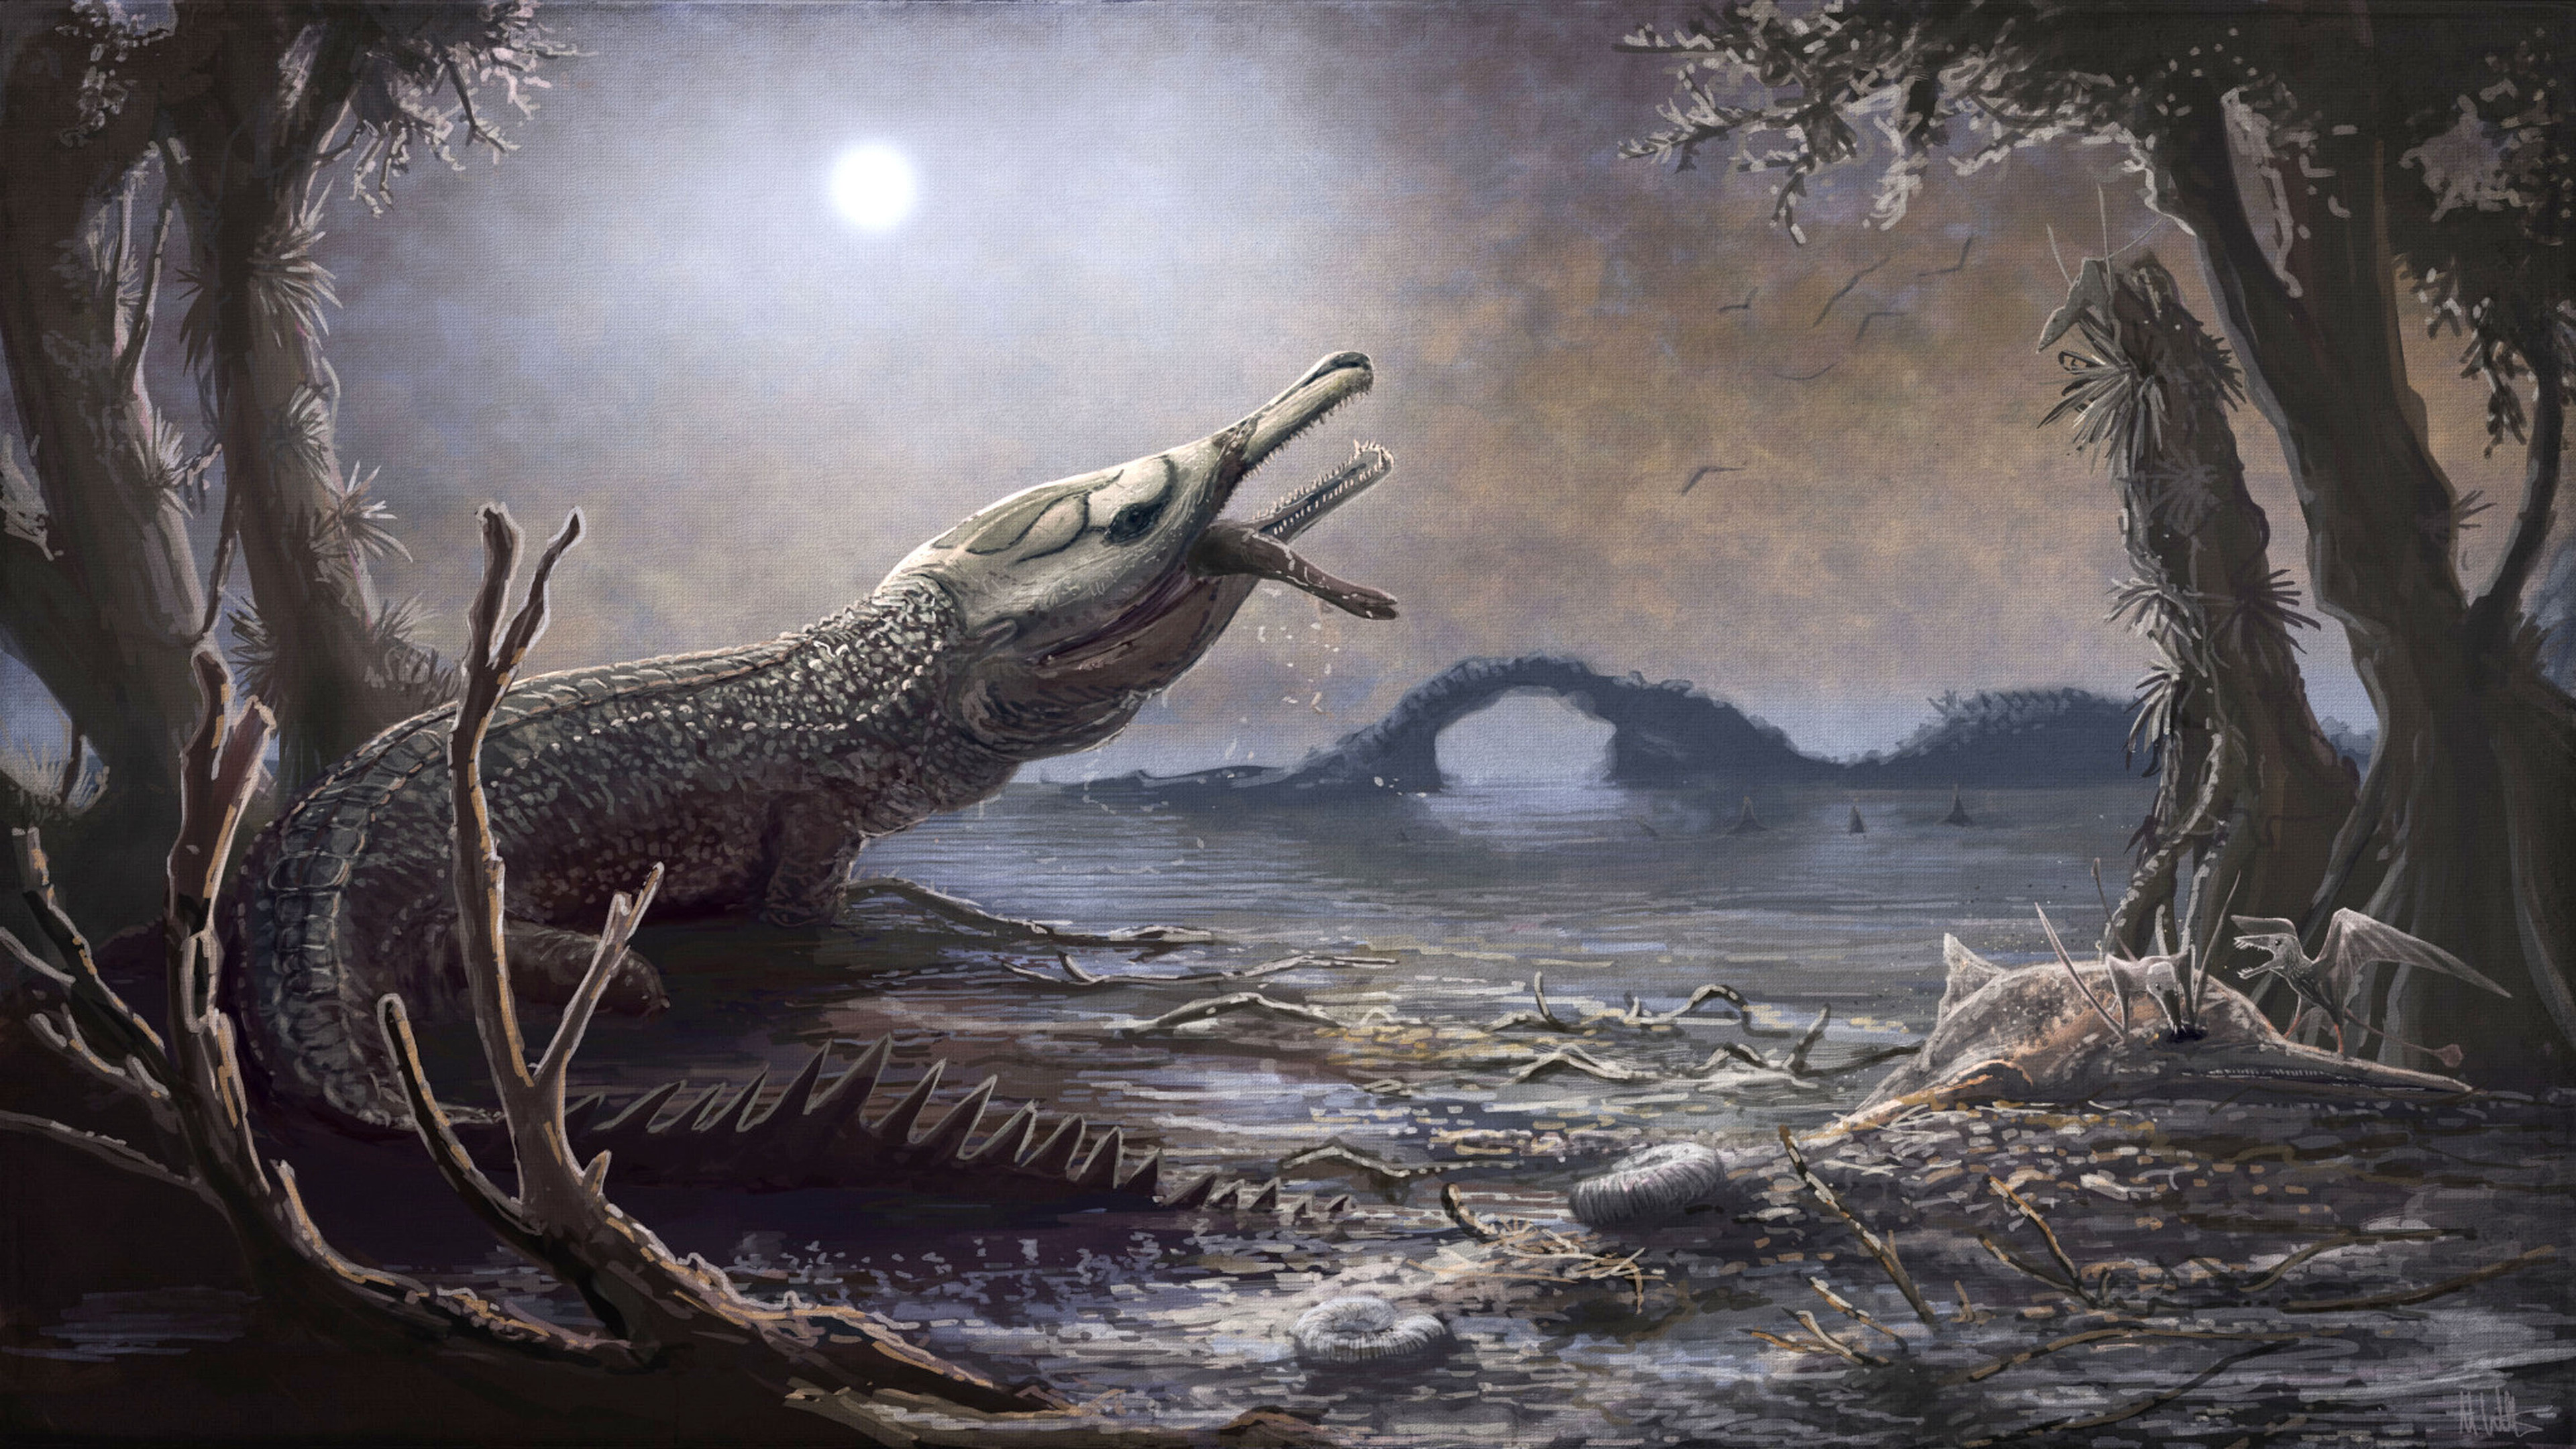 Scientists have named a prehistoric crocodile after Lemmy Kilmister